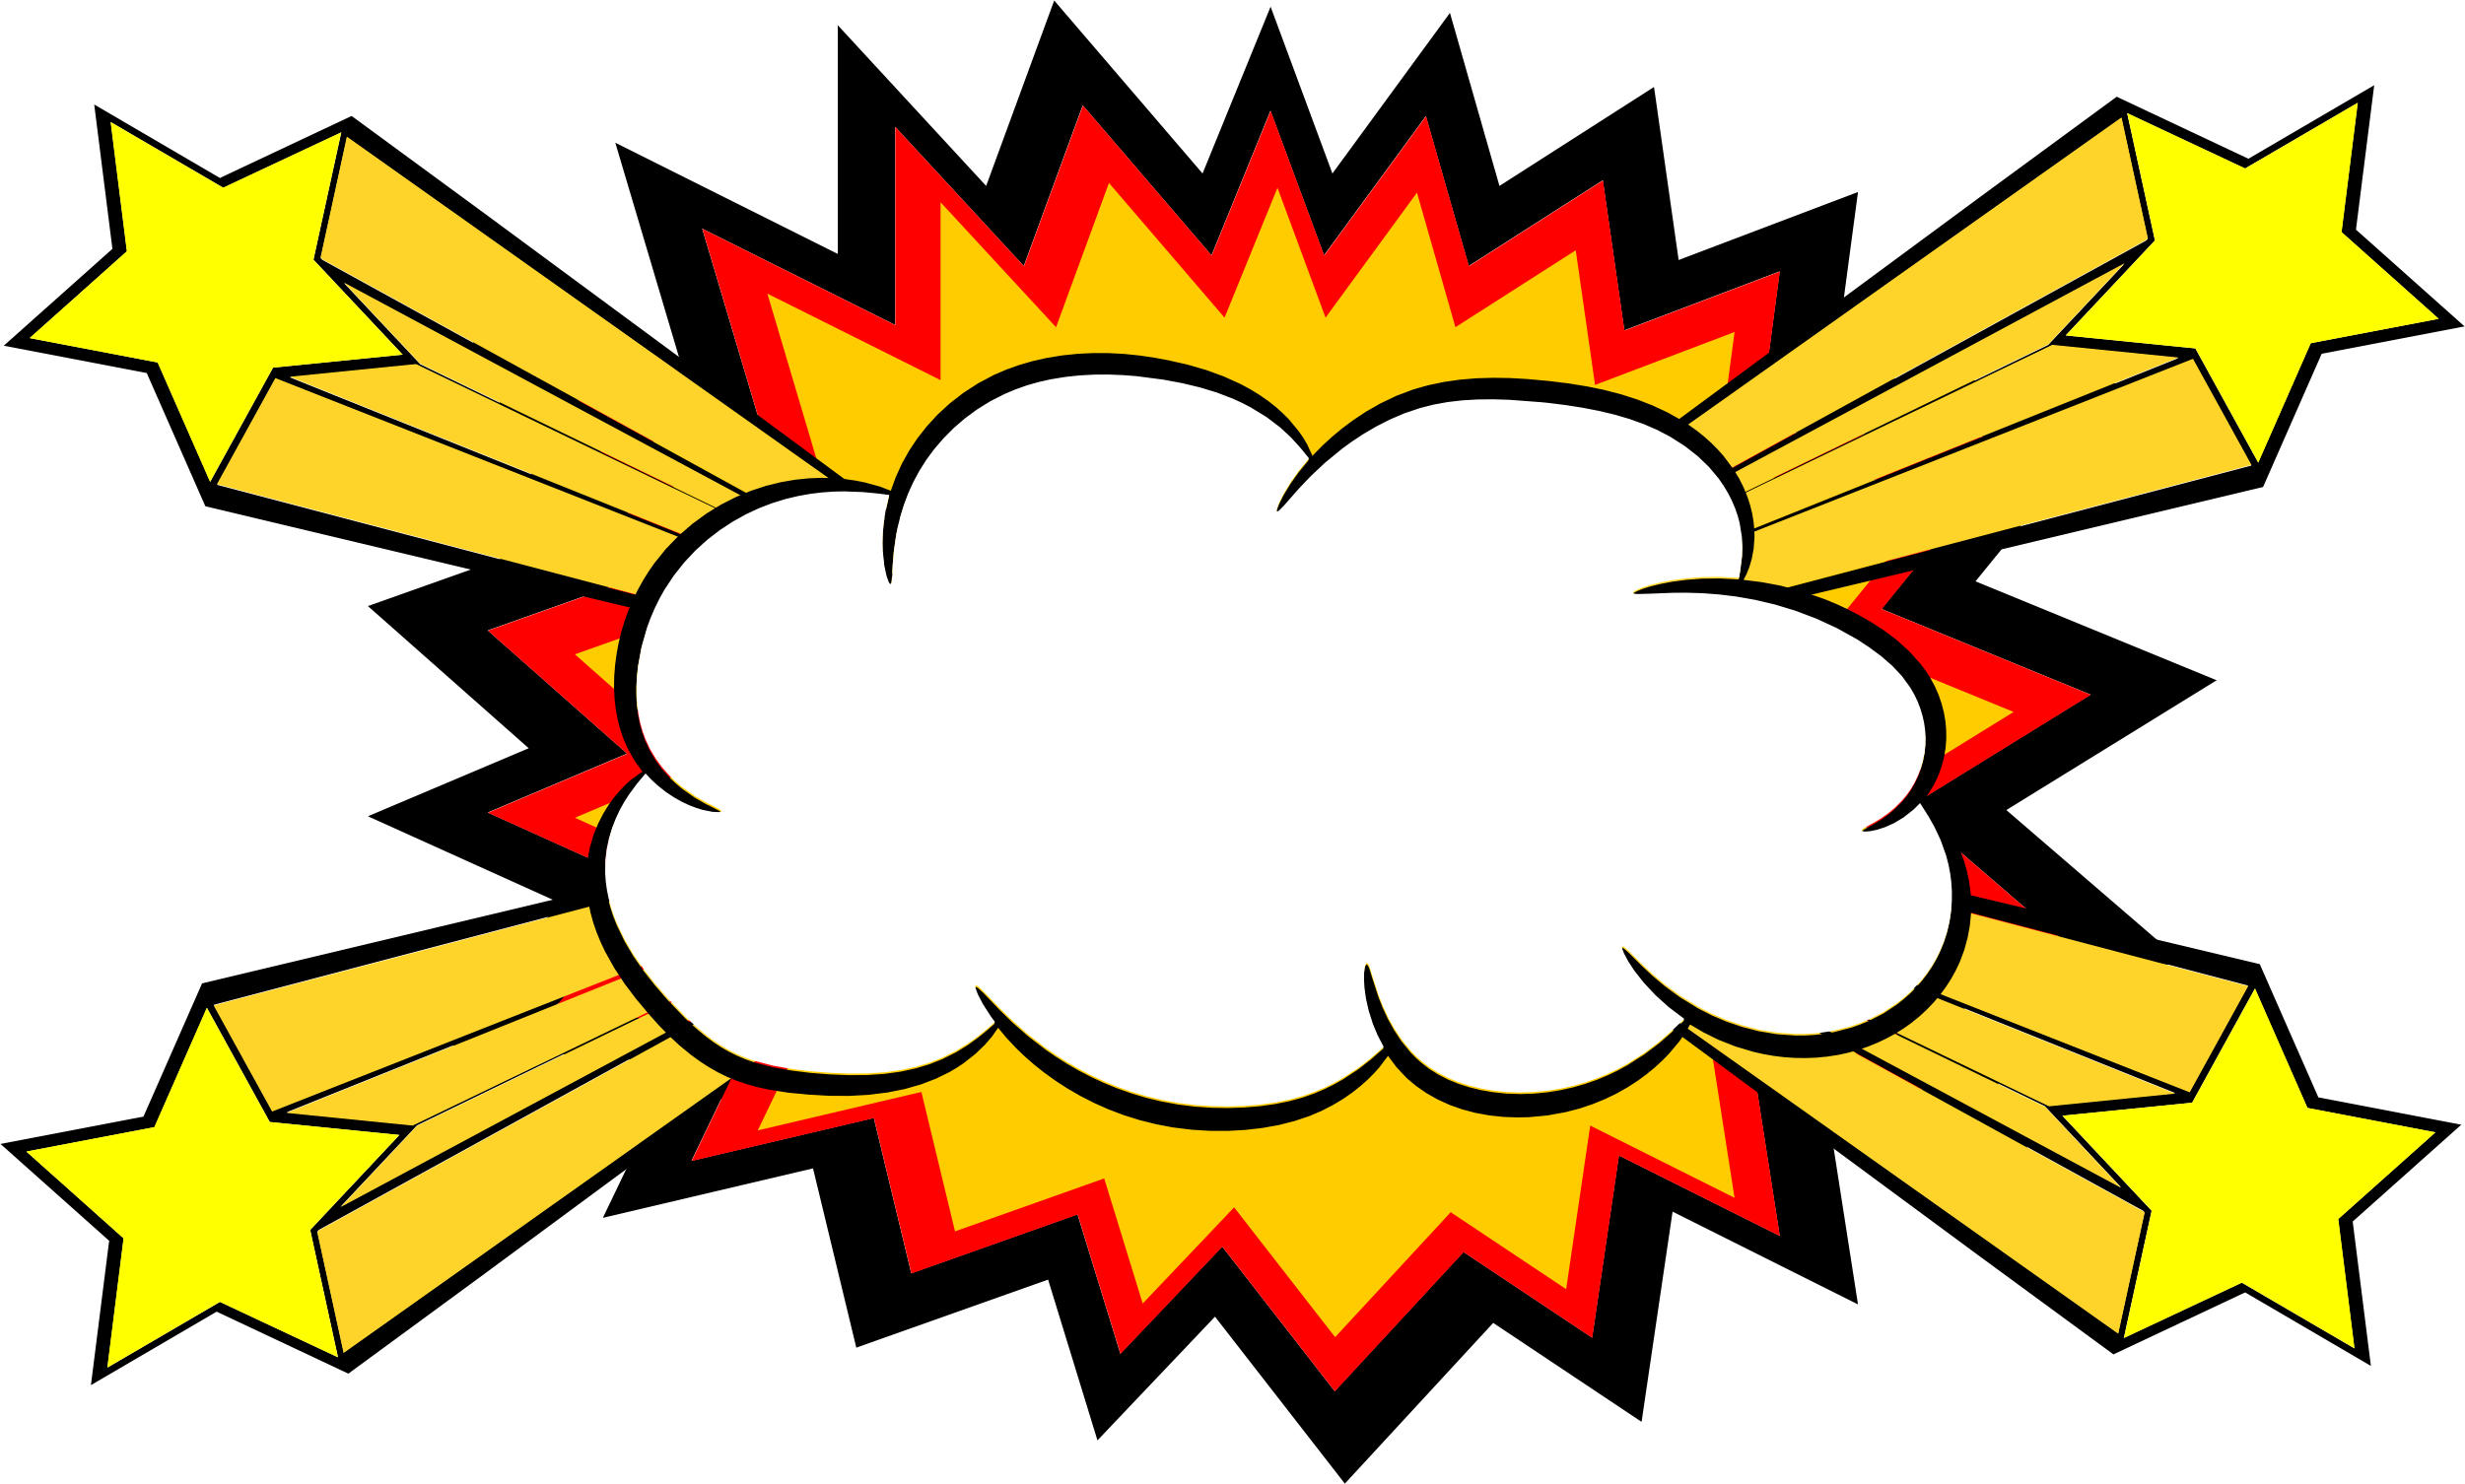 Comic book explosion background png. Bubble transparent svg